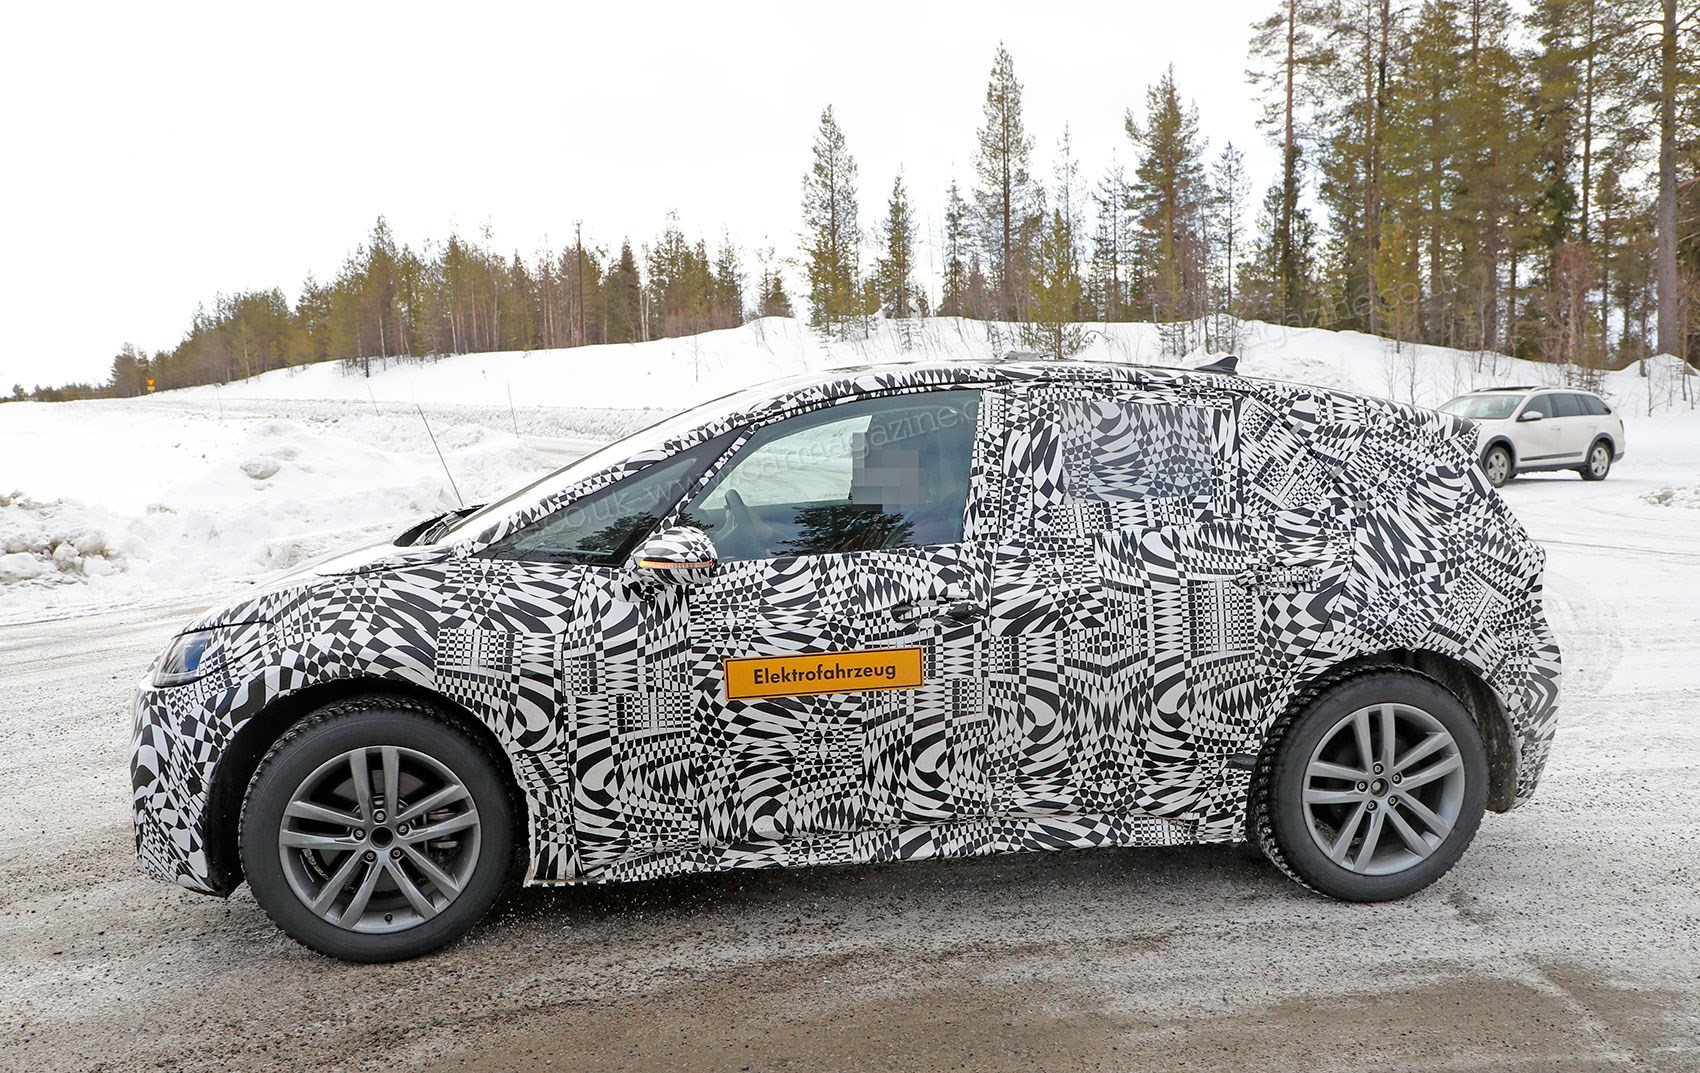 Vw Neo Electric Car Spy Photos From Winter Testing